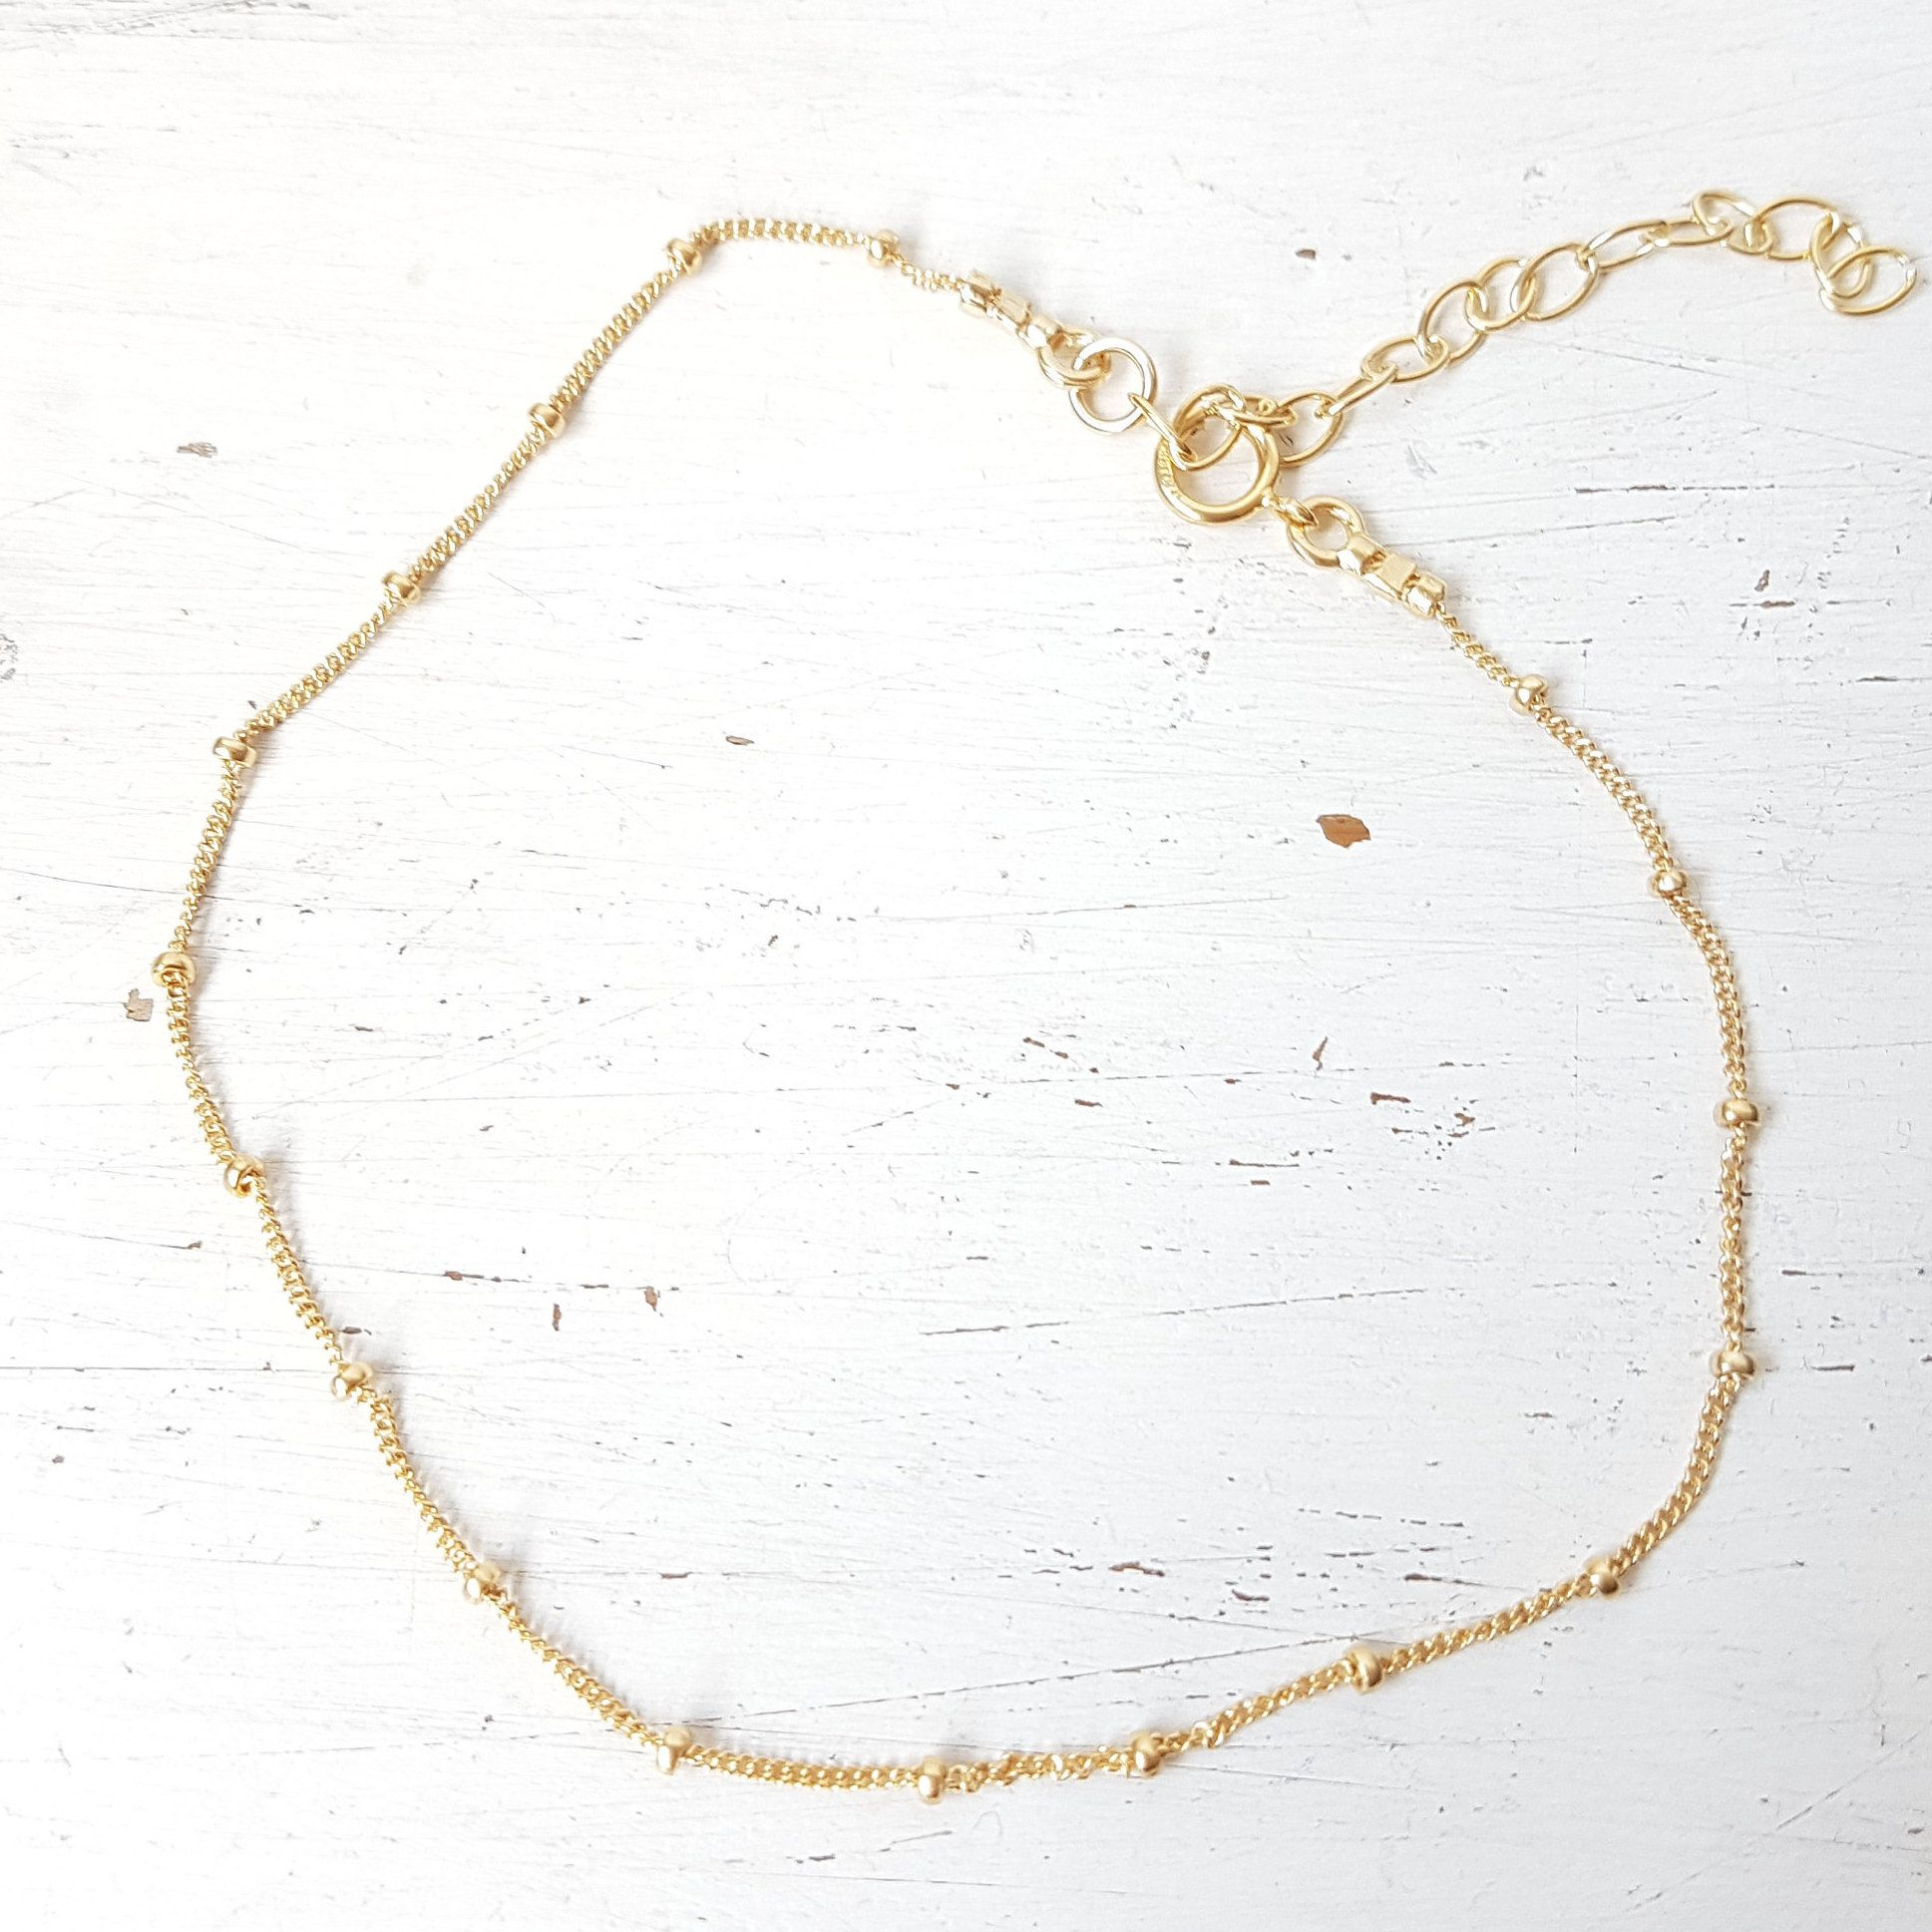 Photo of Gold Anklet,gold filled anklet,dainty anklet,minimalist layered anklet,satellite chain,tiny anklet,body jewelry,Summer anklet -21012